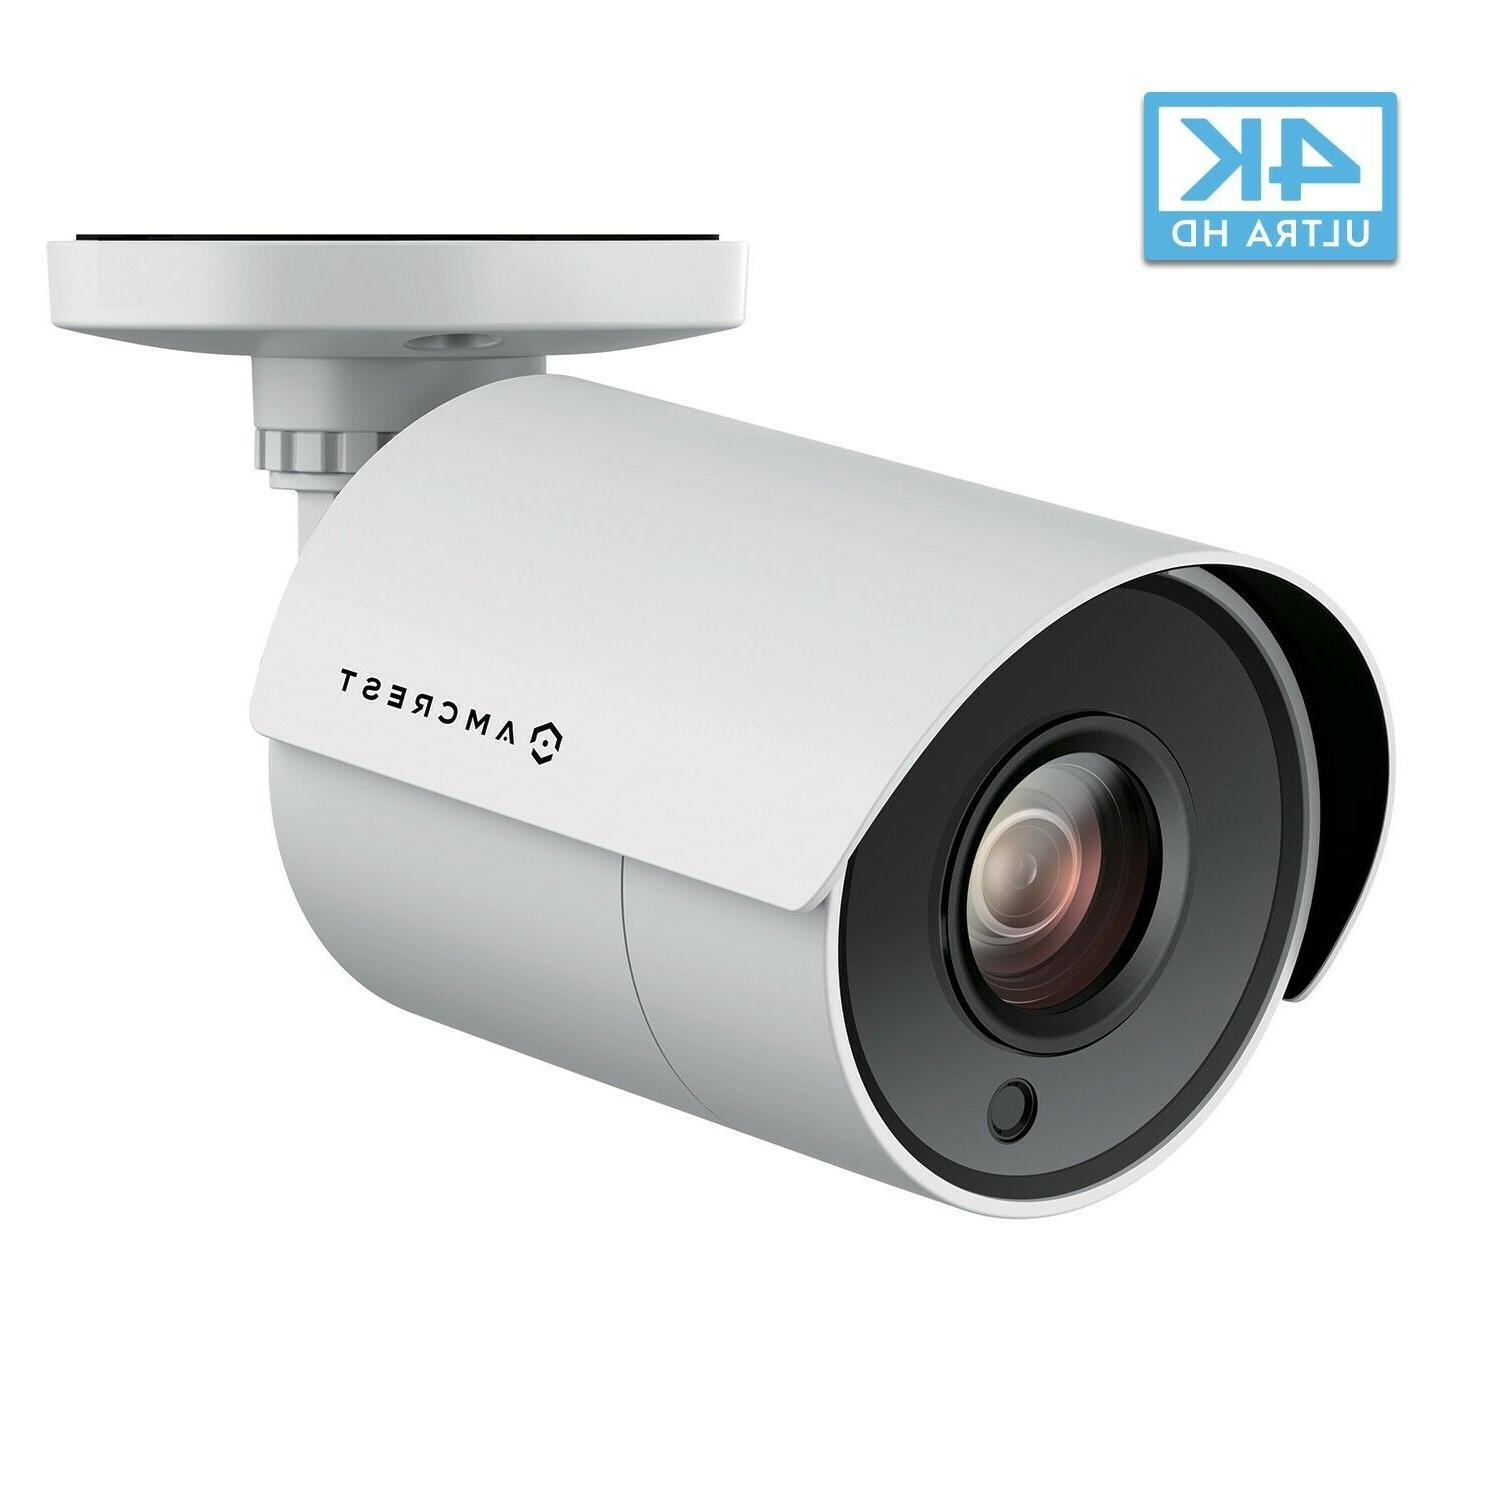 qty 8 ultrahd 4k bullet outdoor security